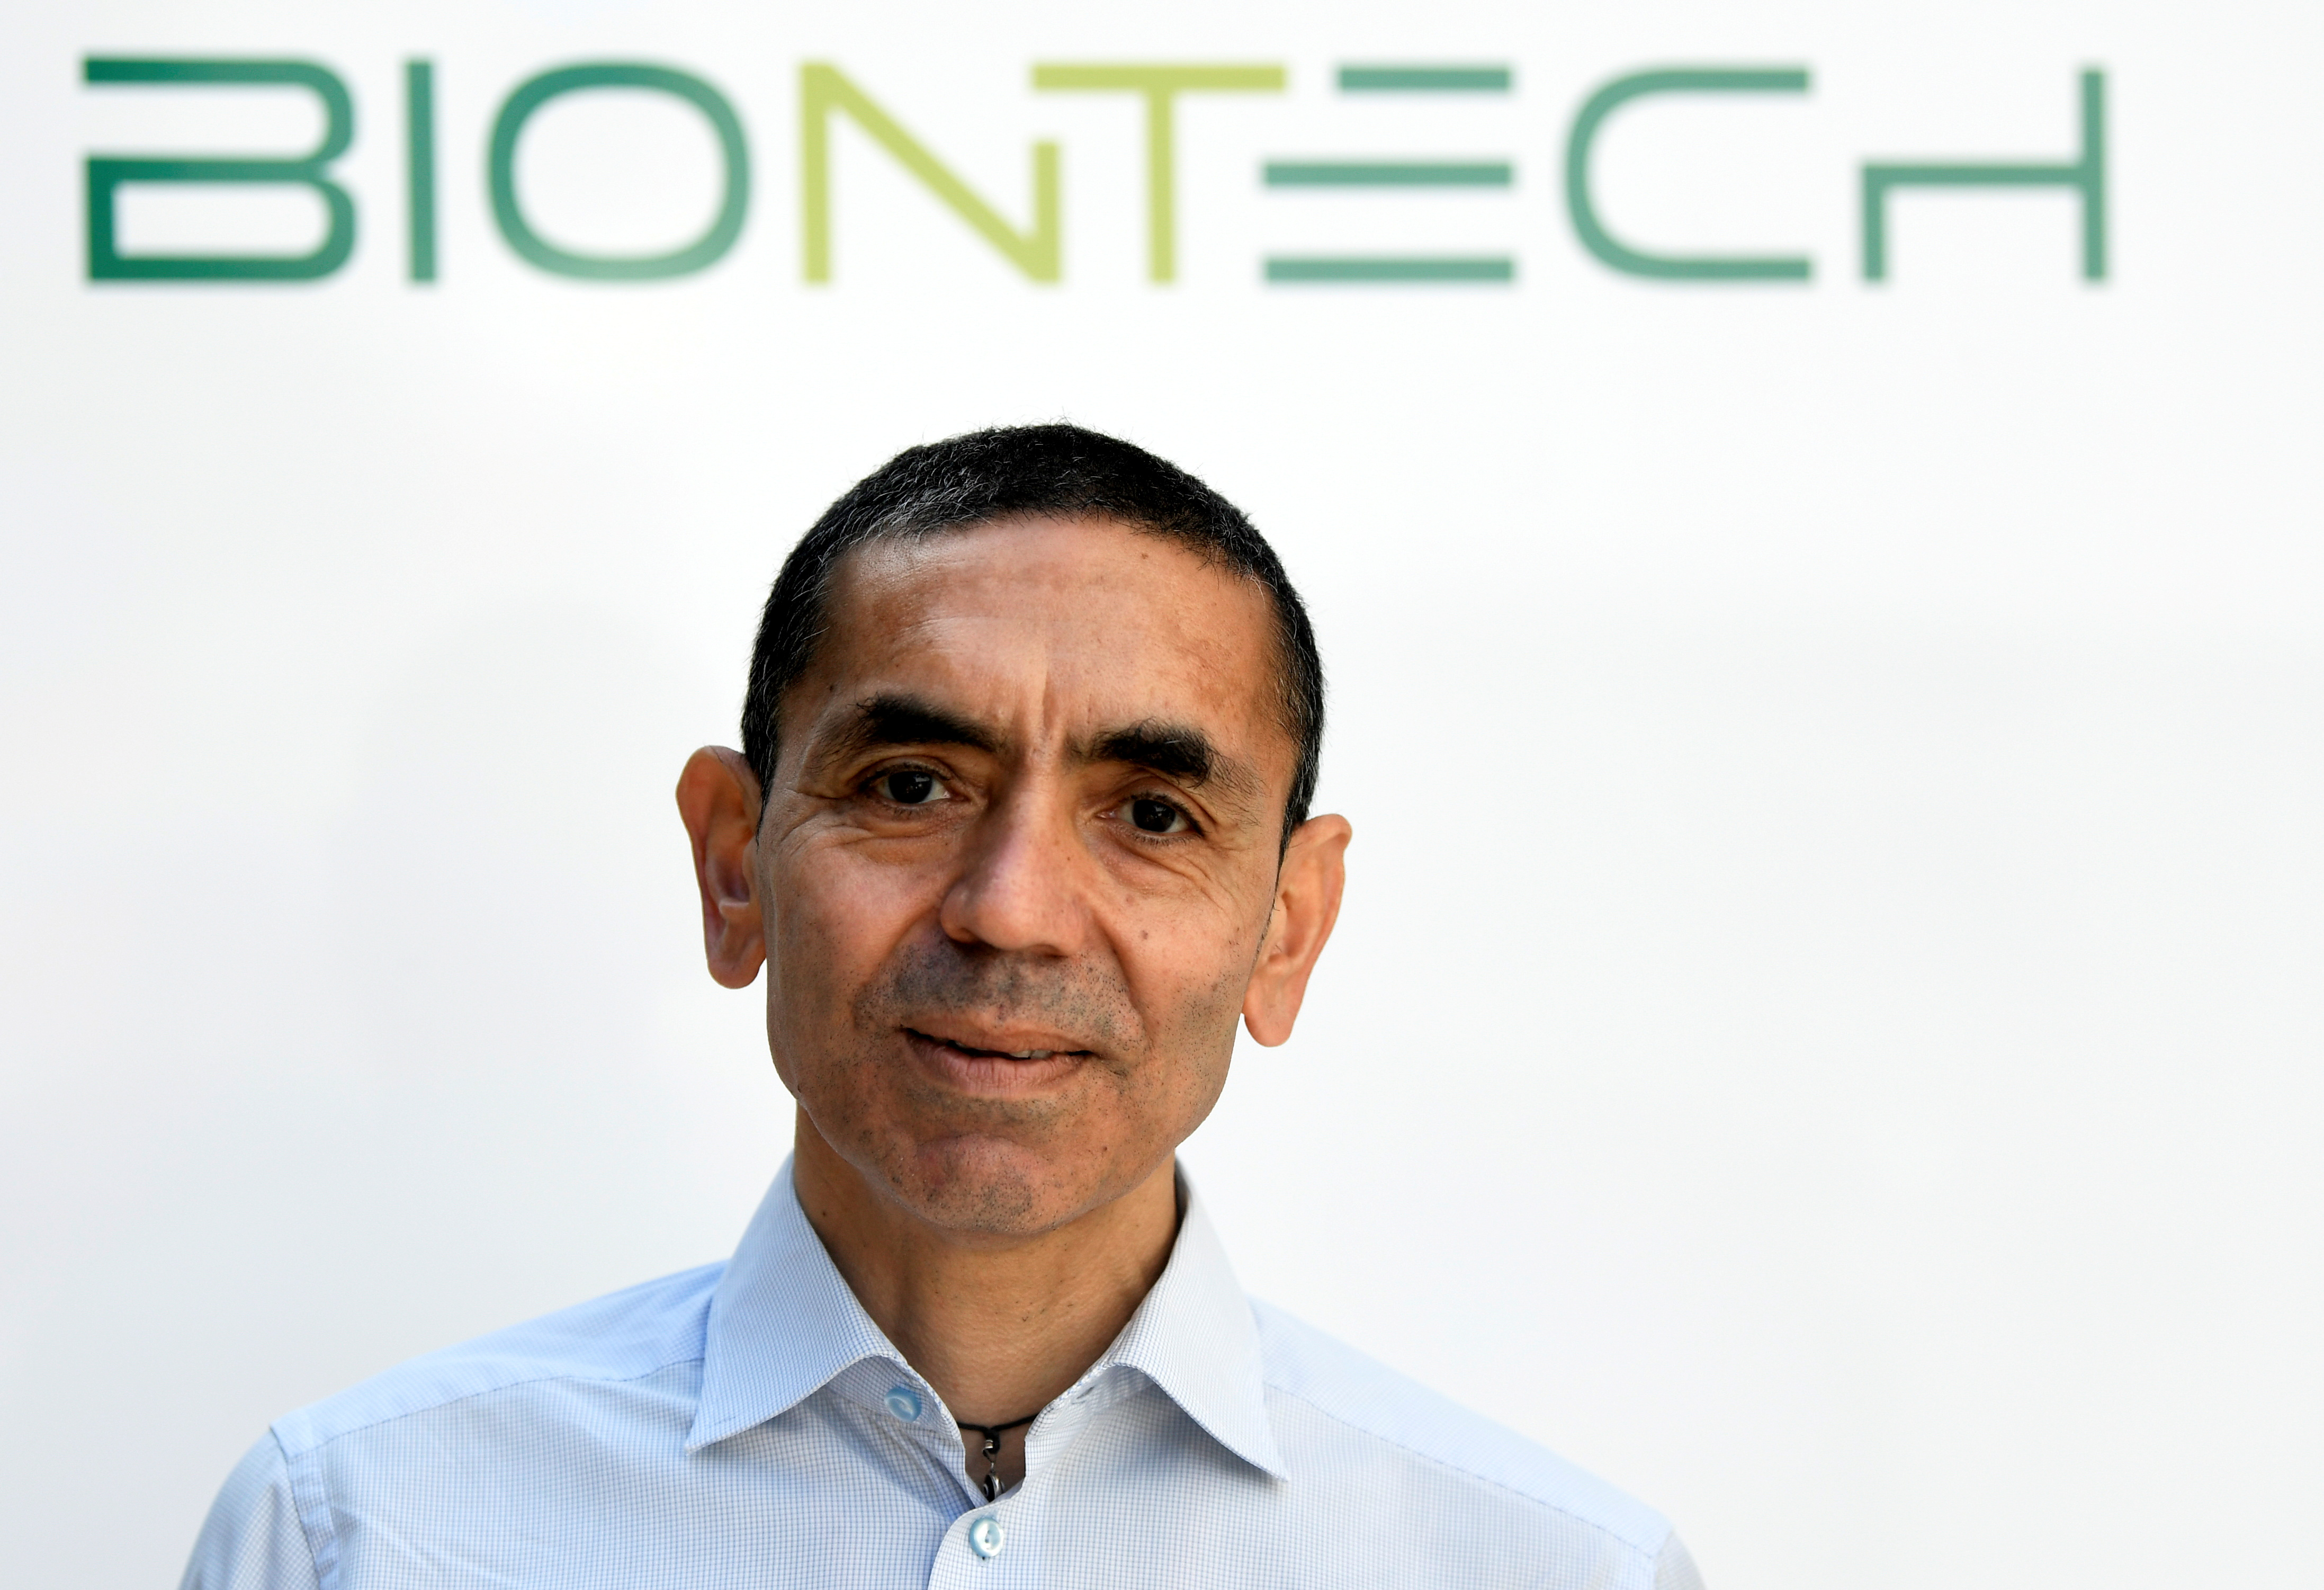 Ugur Sahin, CEO and co-founder of German biotech firm BioNTech, is interviewed by journalists in Marburg, Germany September 17, 2020. REUTERS/Fabian Bimmer/File Photo